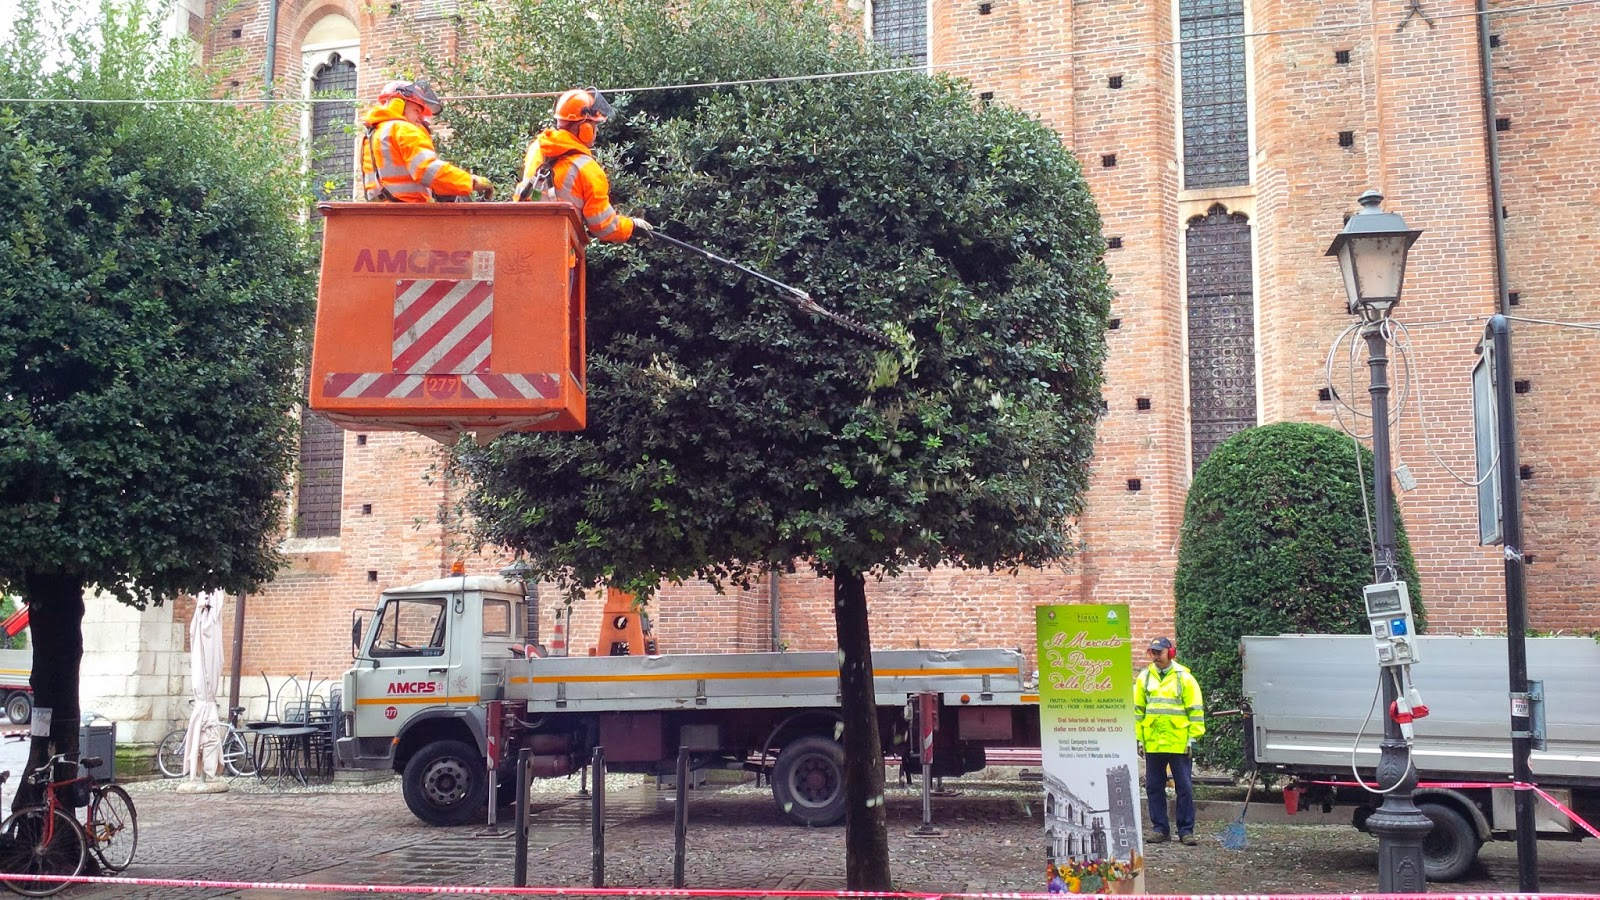 The trees in Vicenza are getting a trim